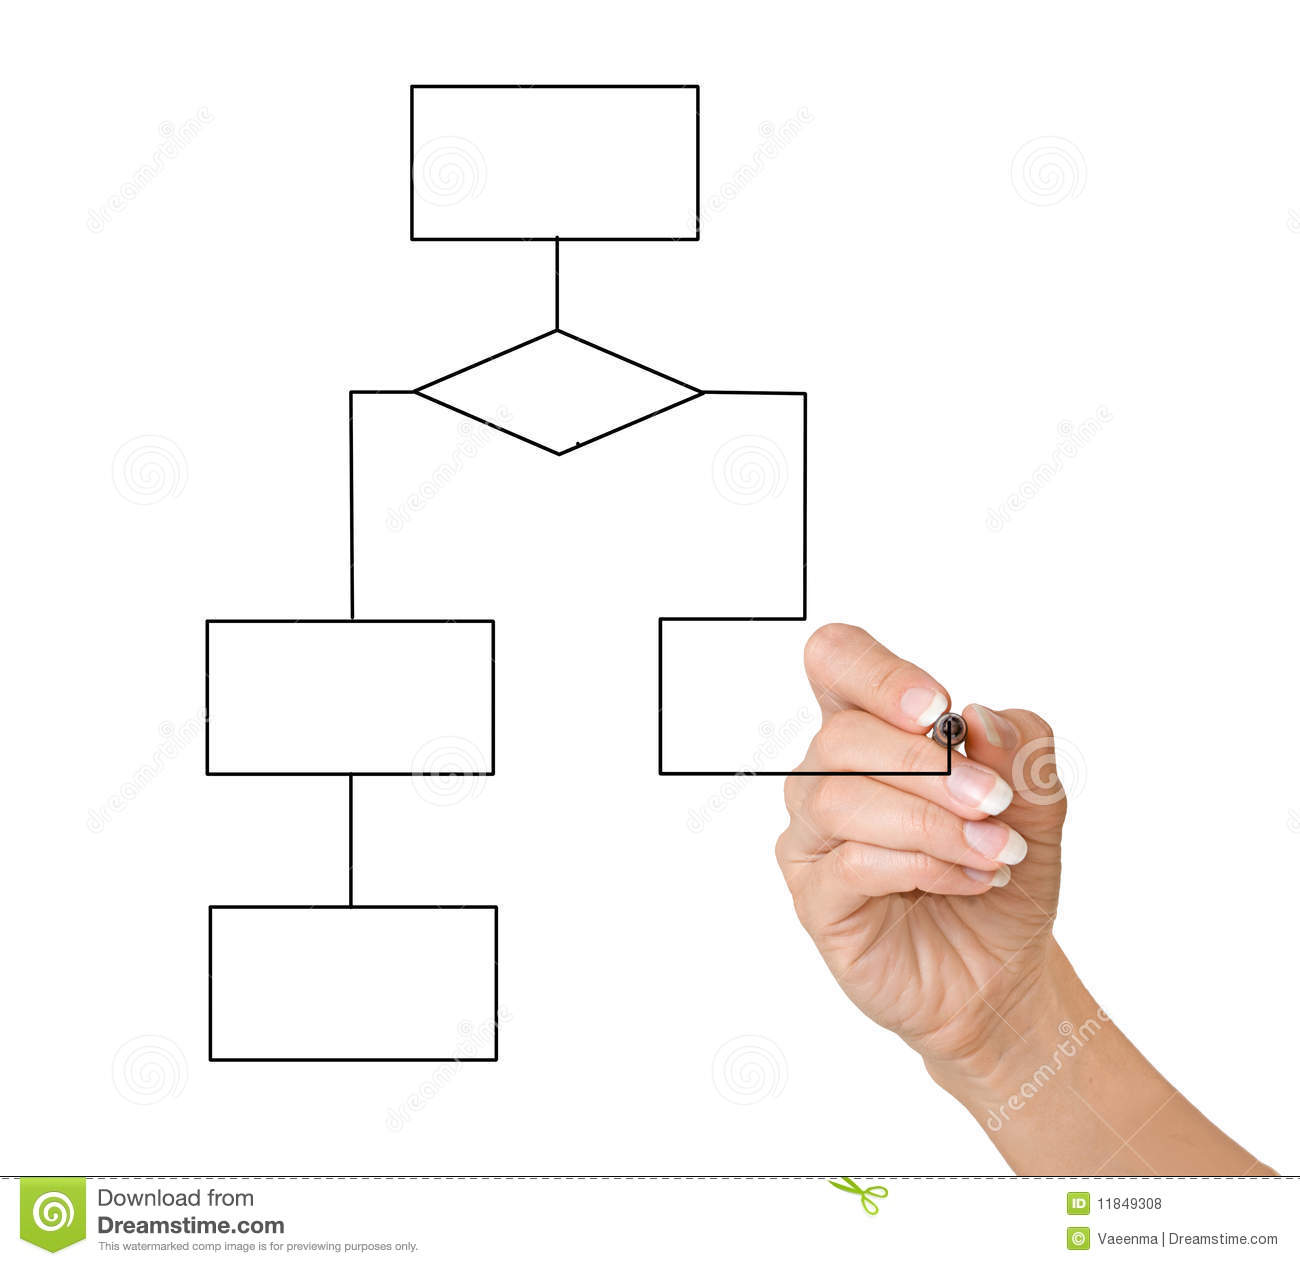 hight resolution of hand drawing a block diagram